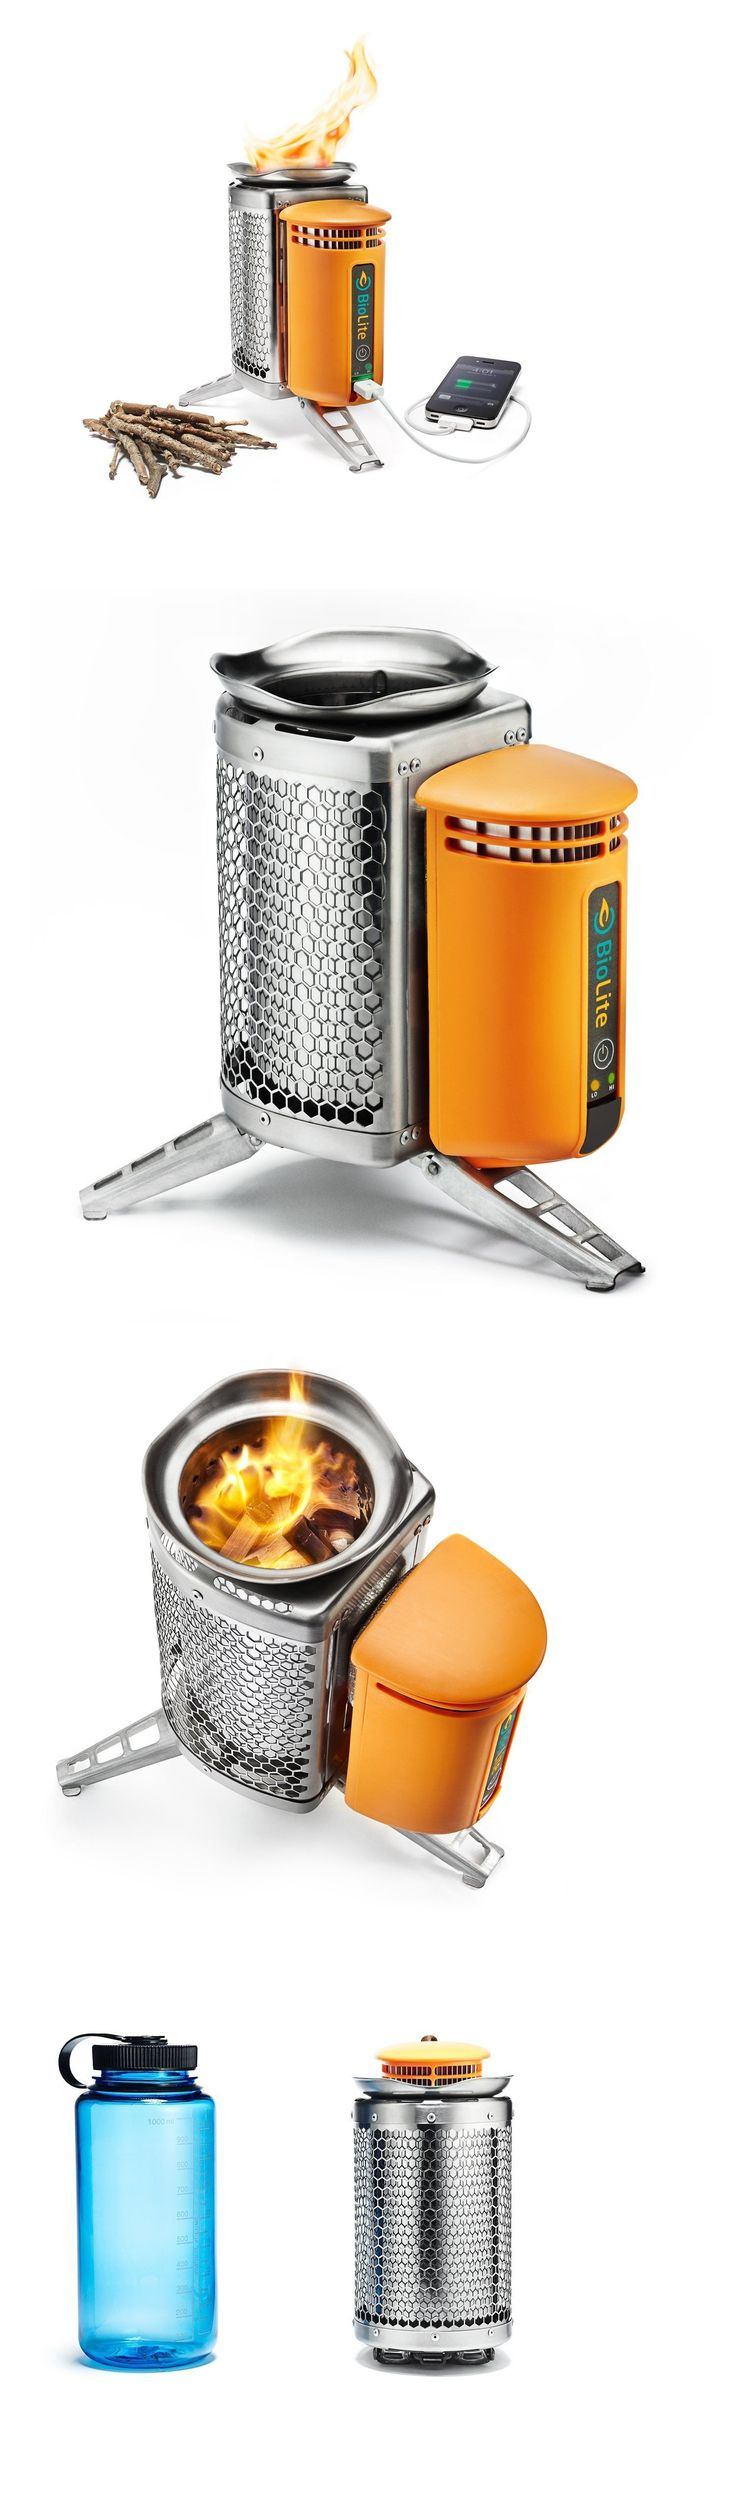 Camping Stoves 181386: Biolite Campstove Portable Wood-Burning Stove And Power Generator Camping/Survival BUY IT NOW ONLY: $129.95